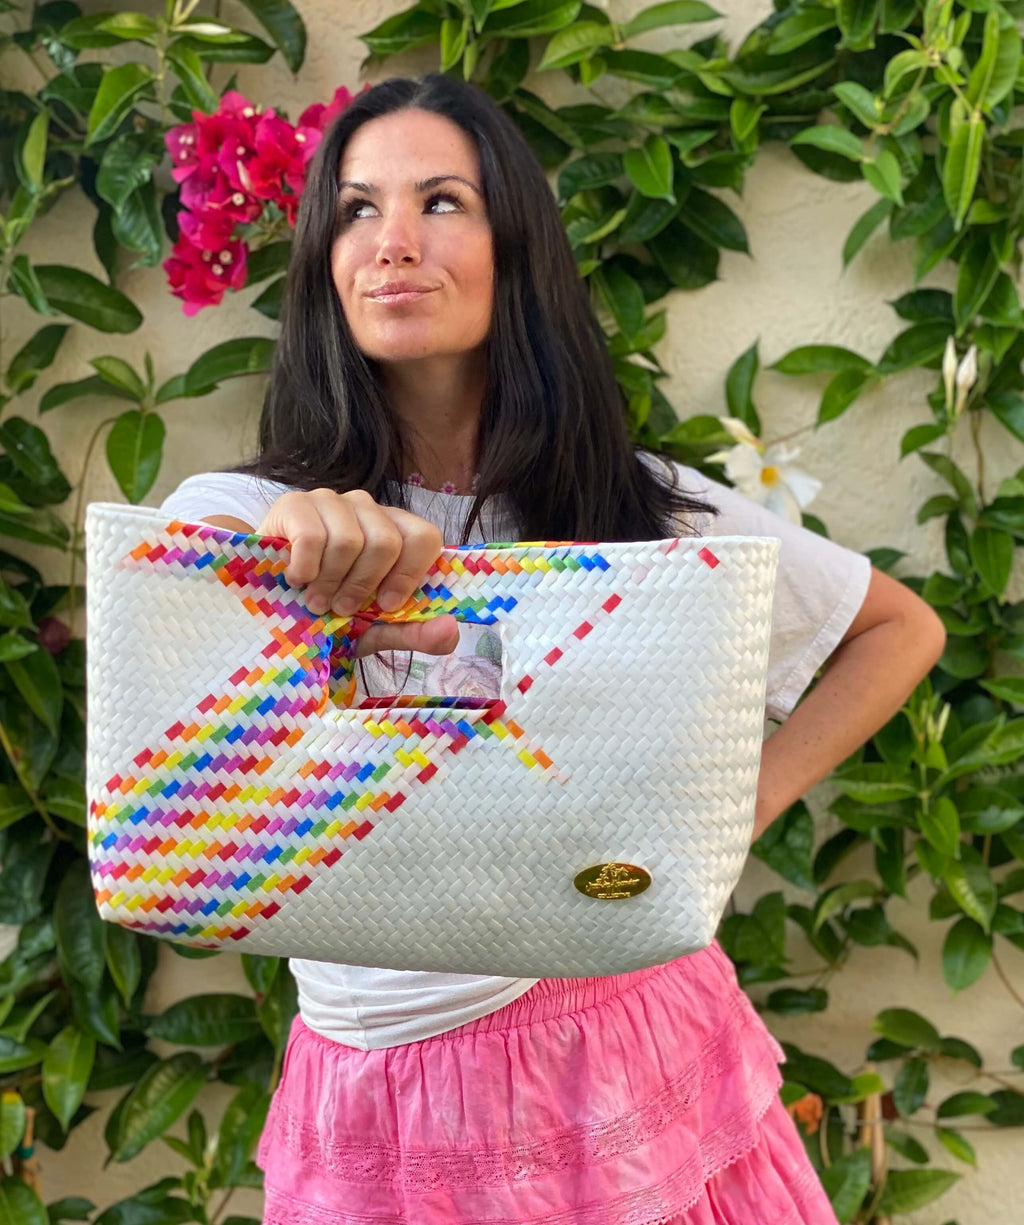 Alison Woven Clutch in White Splash of Rainbow - Josephine Alexander Collective